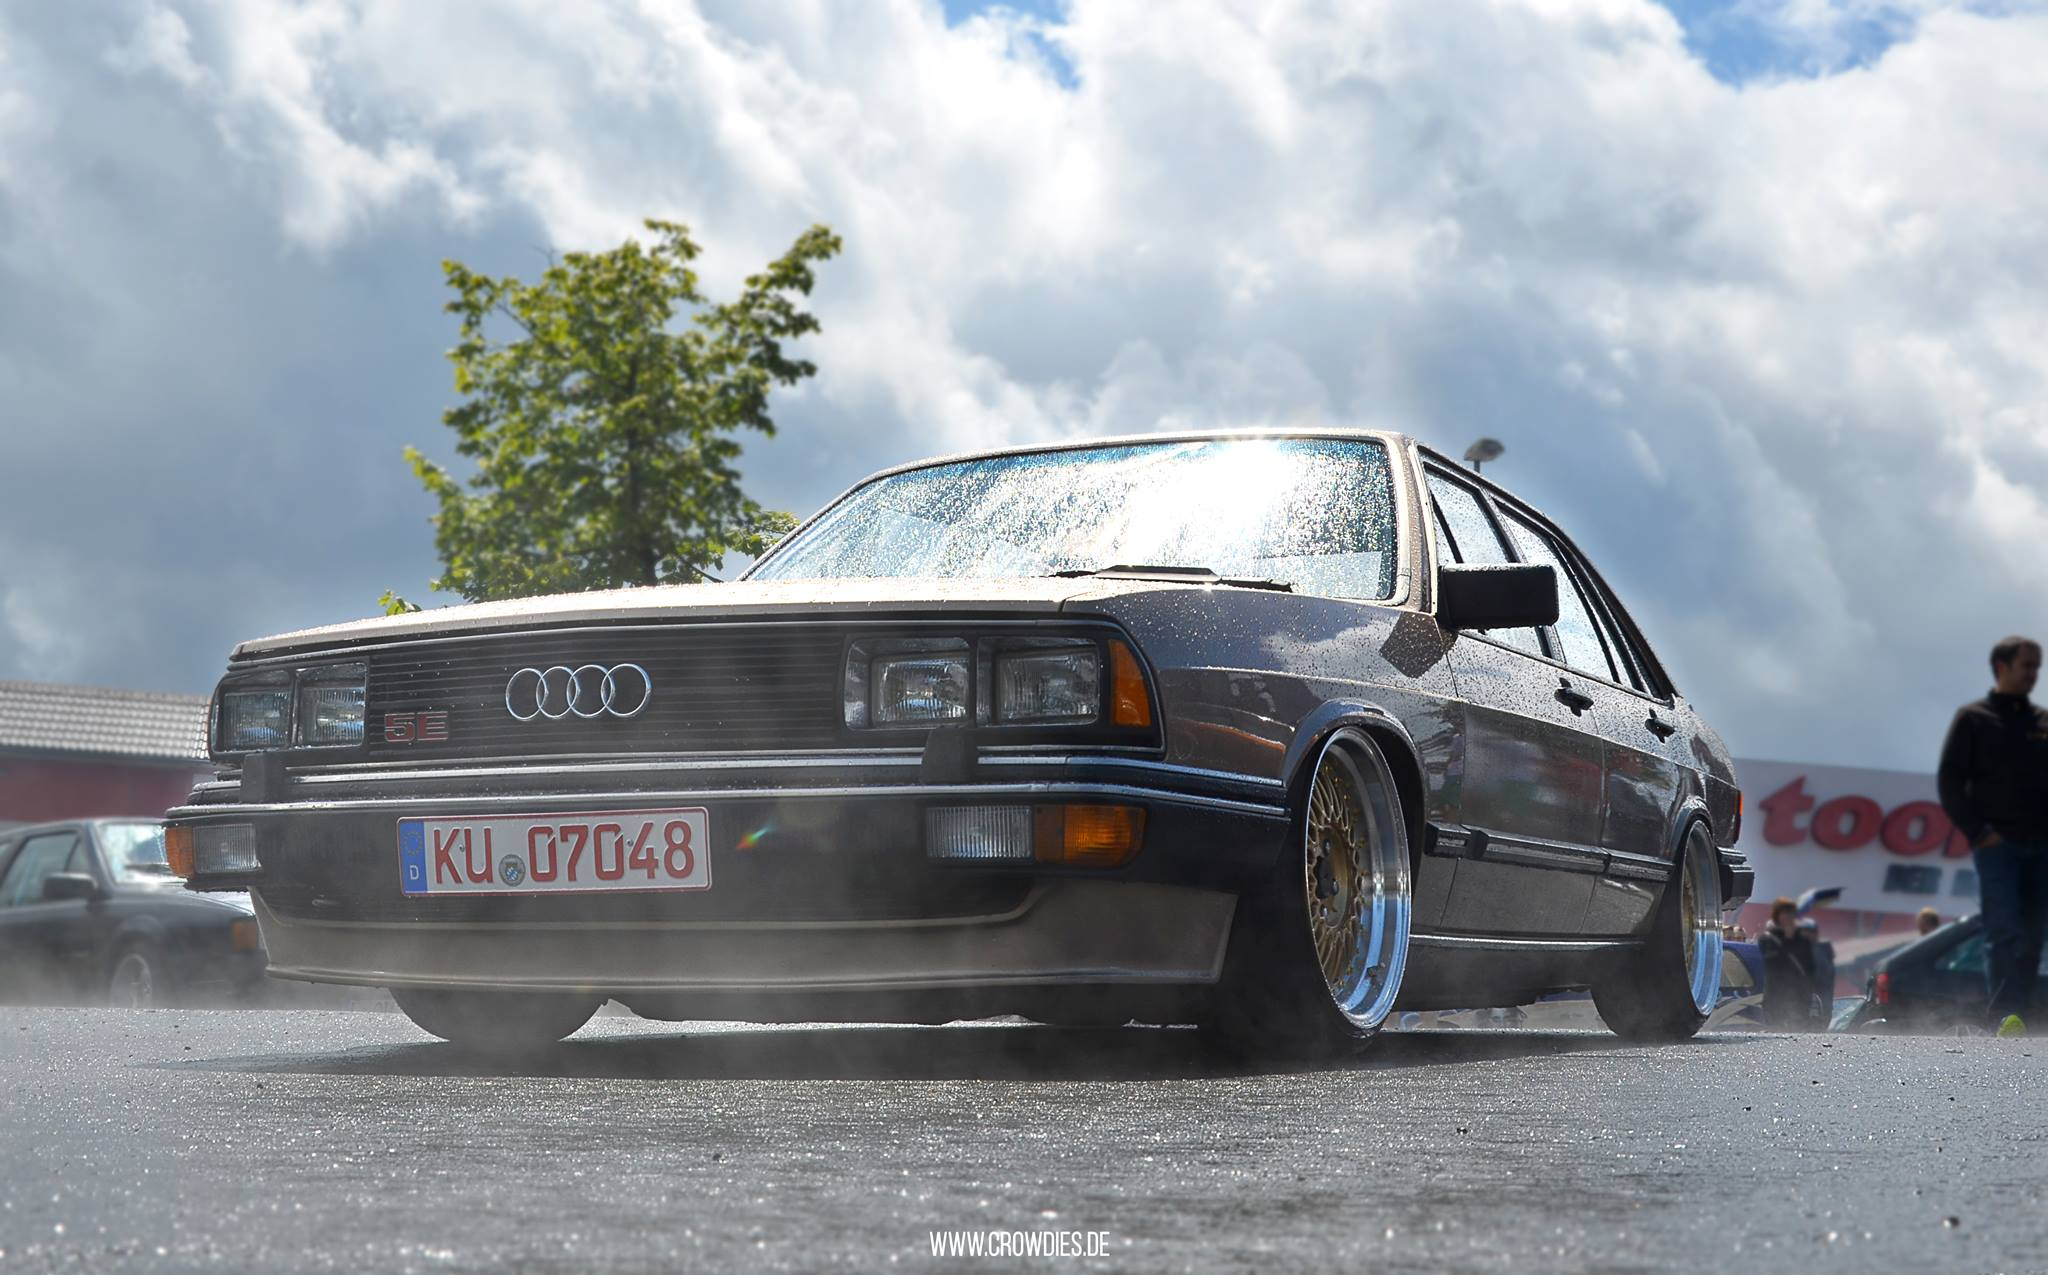 Low Cars & High Hills 2016 – Audi 200 TYP43